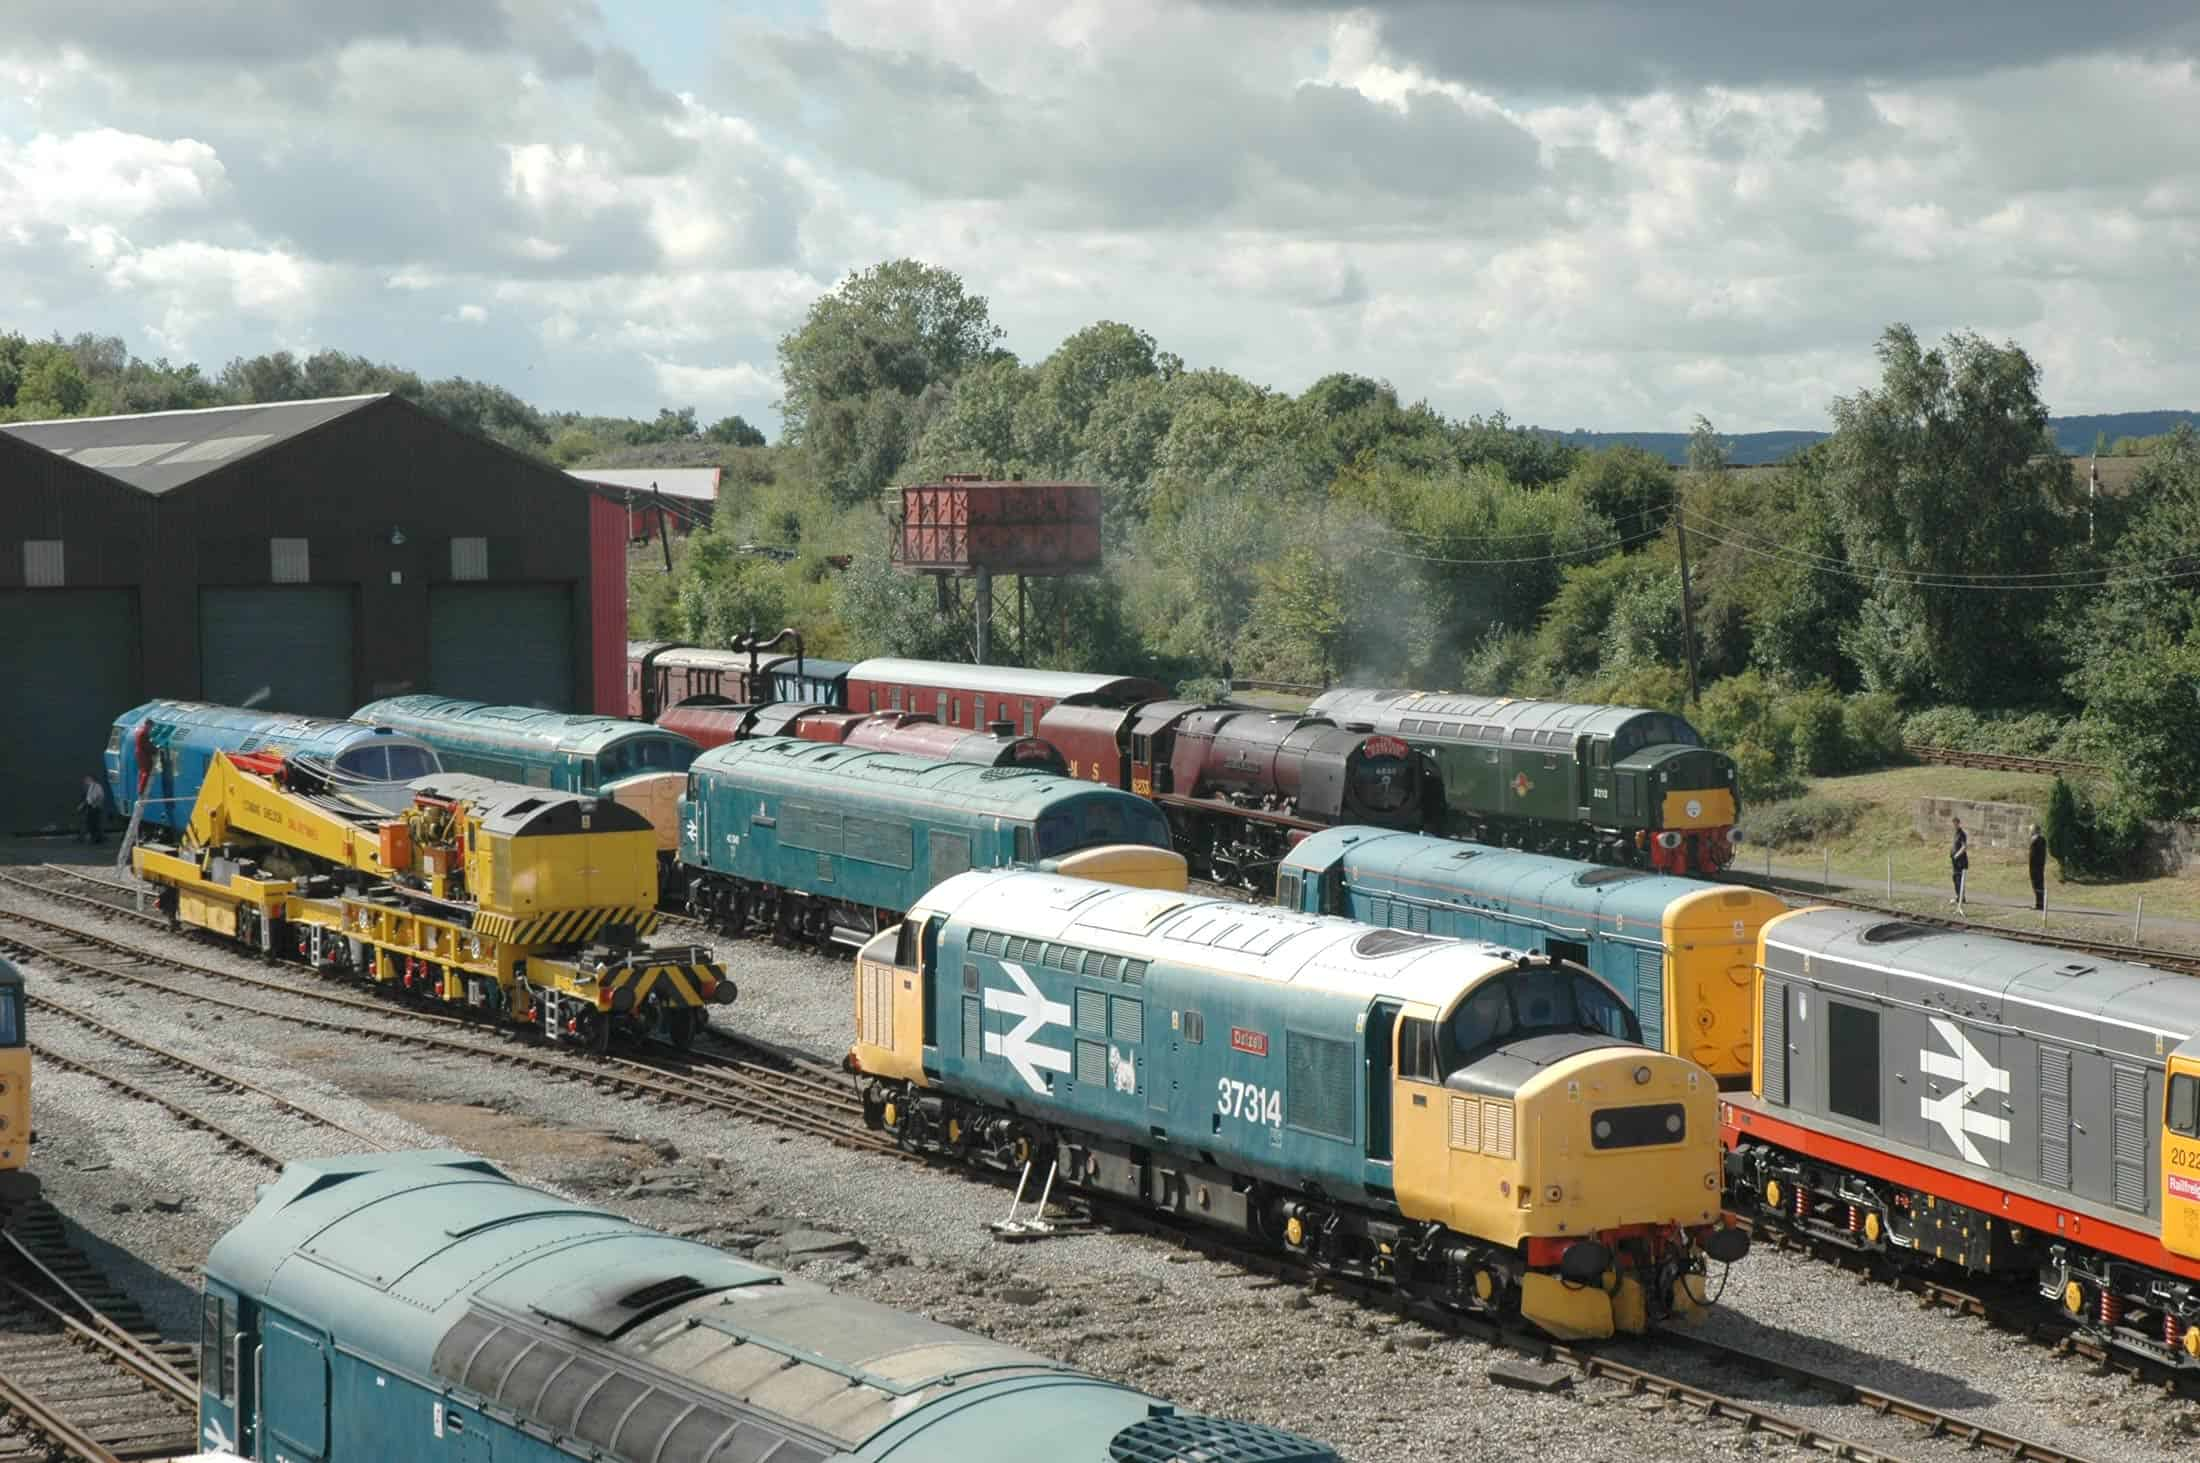 Diesel Trains at Midland Railway - Butterley